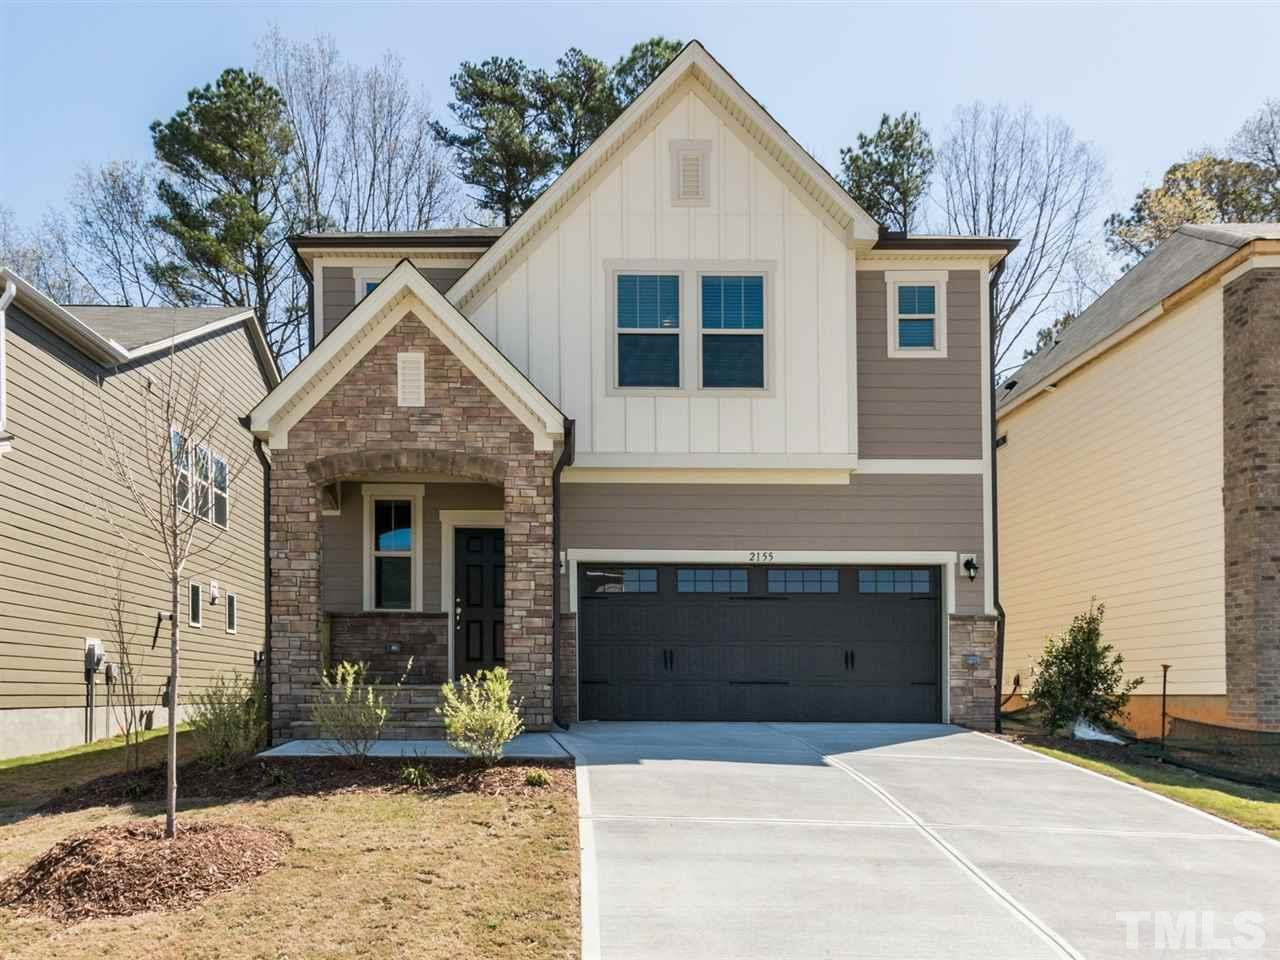 2155 McKenzie Ridge Lane, Apex, NC 27502